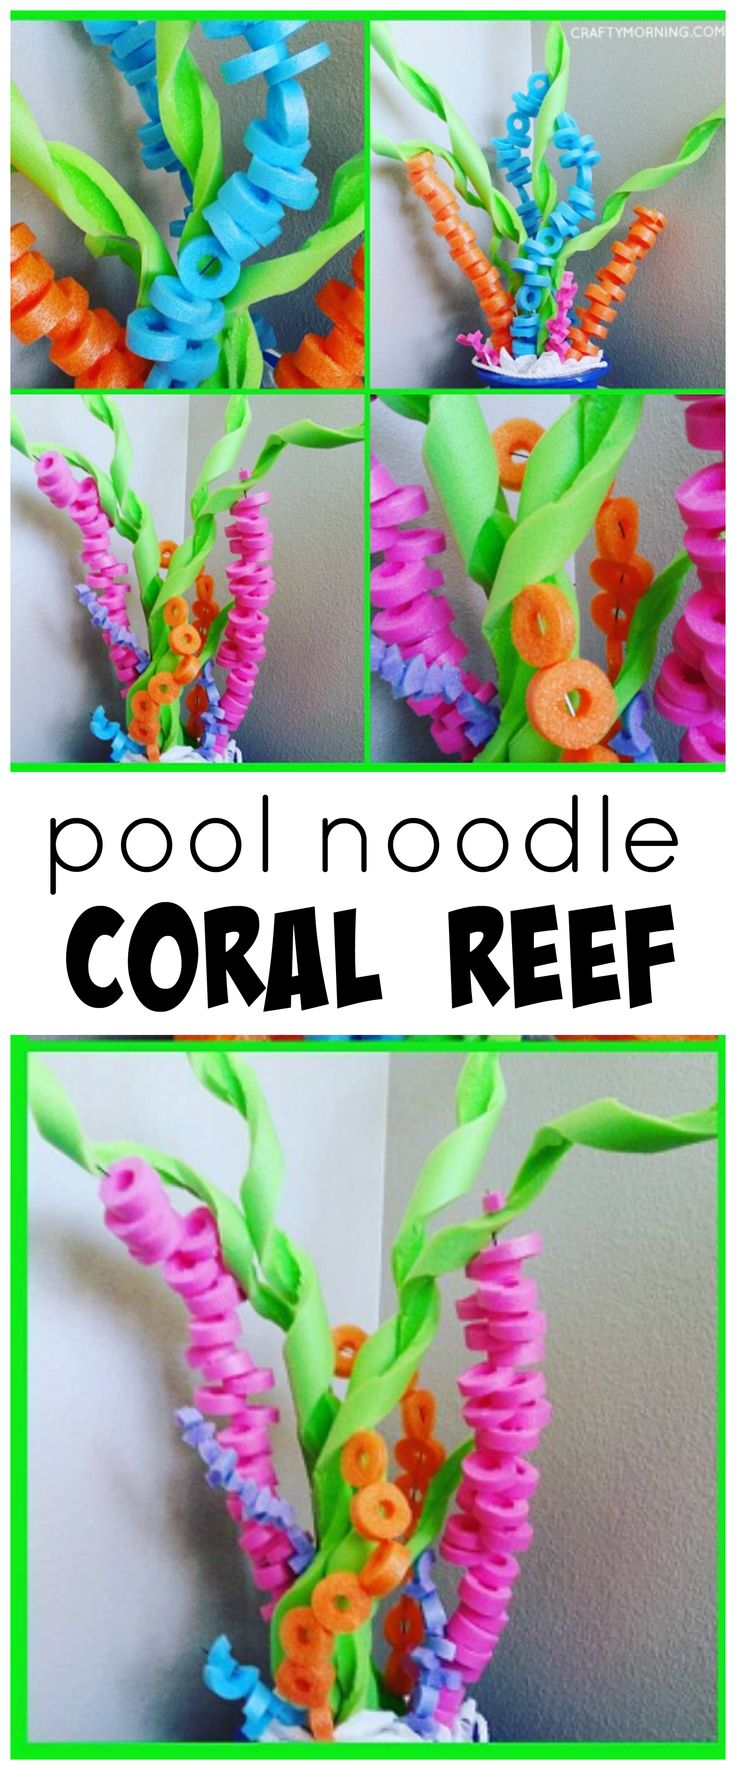 Pool noodle coral reef craft for an under the sea party with kids!